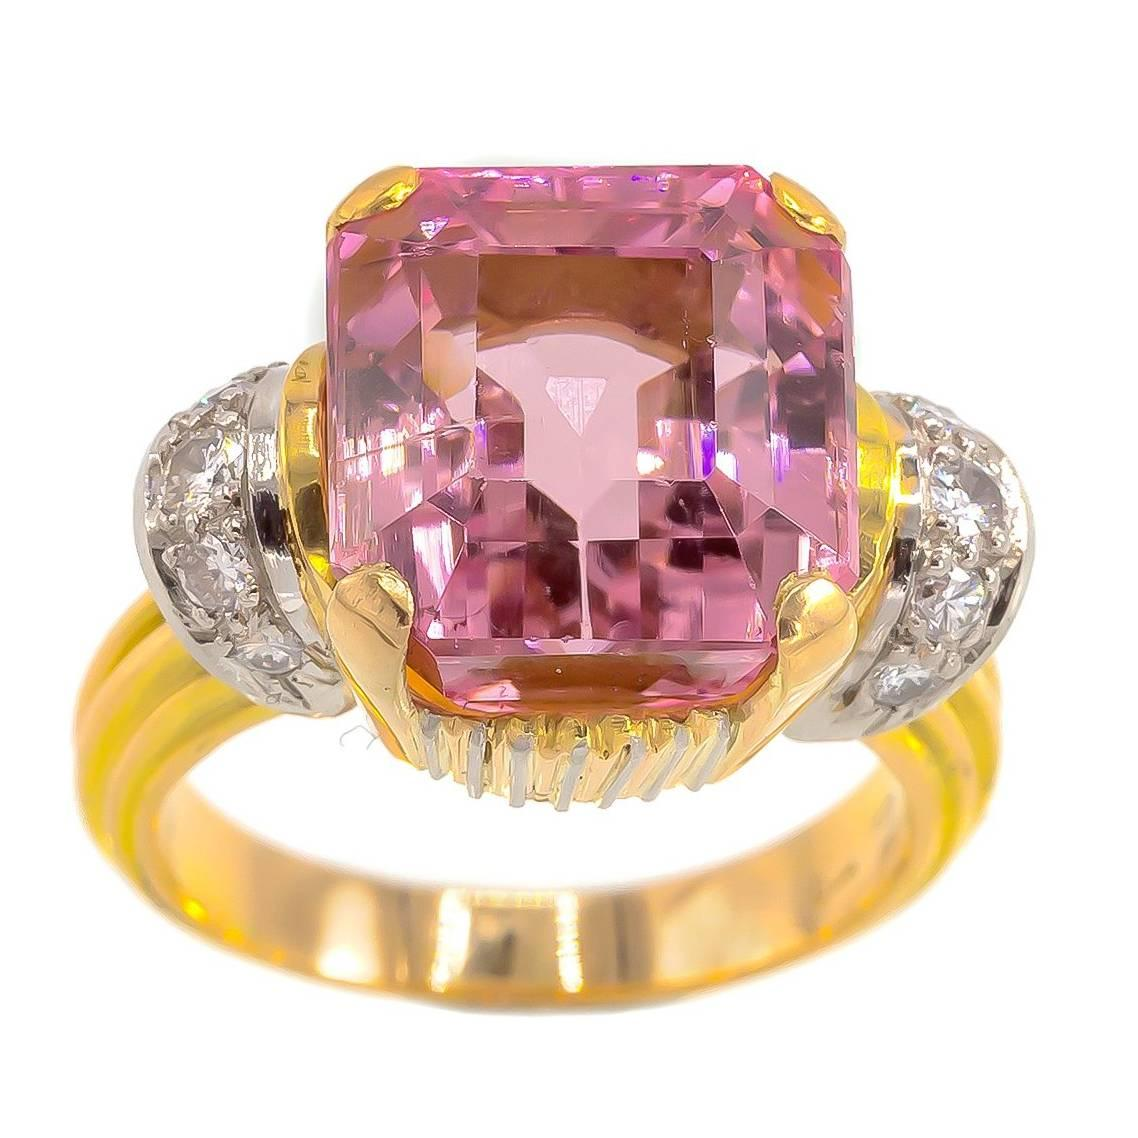 Pink Tourmaline Ring with Diamonds For Sale at 1stdibs